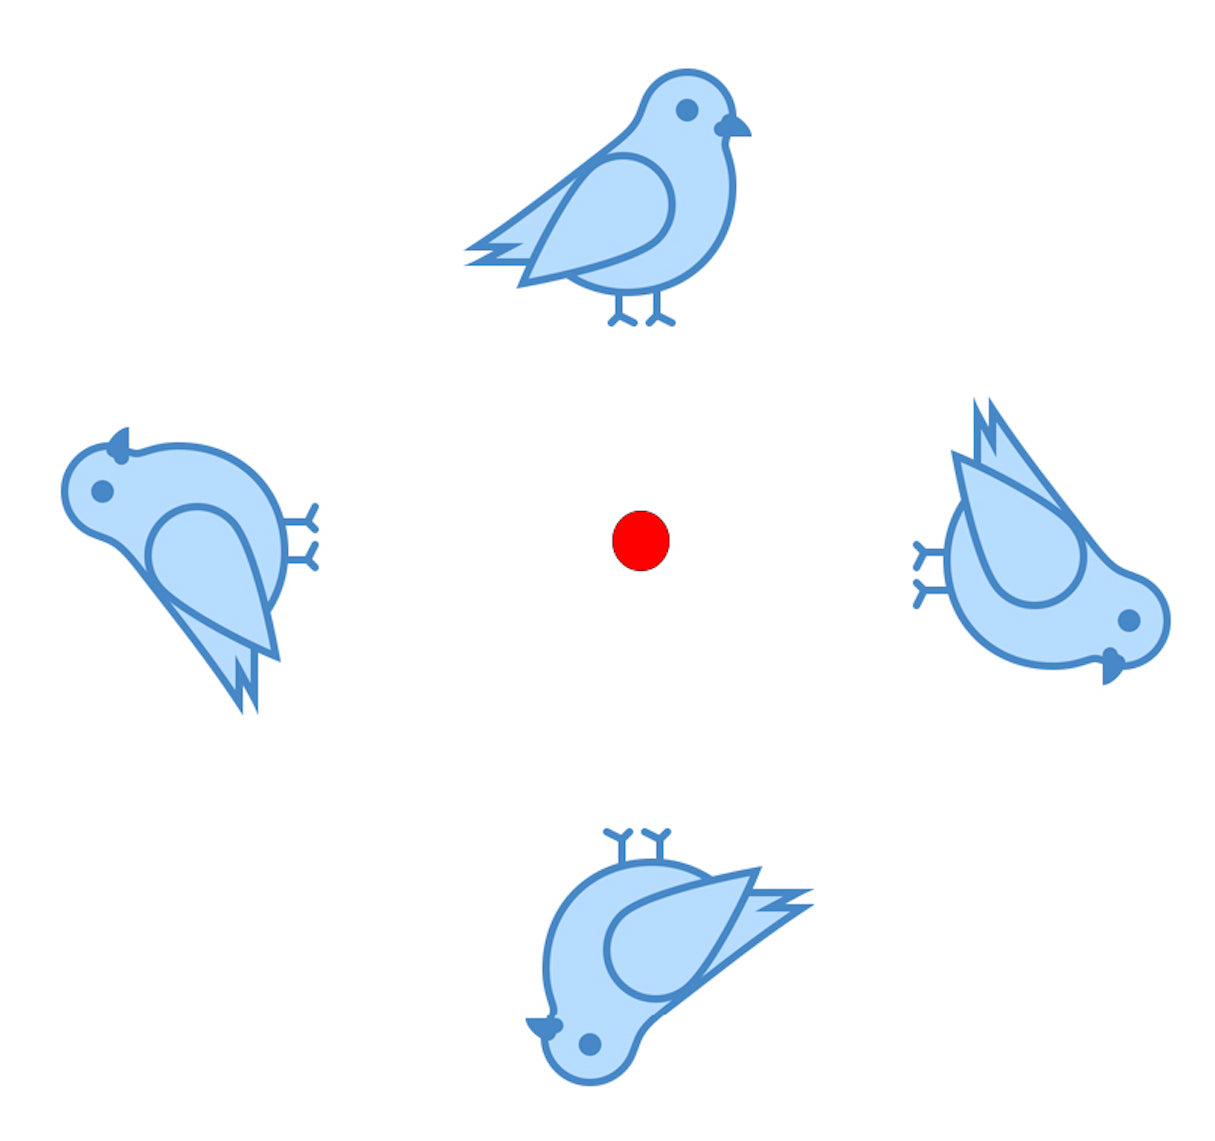 asymmetrical-design-rotation-symmetry-birds